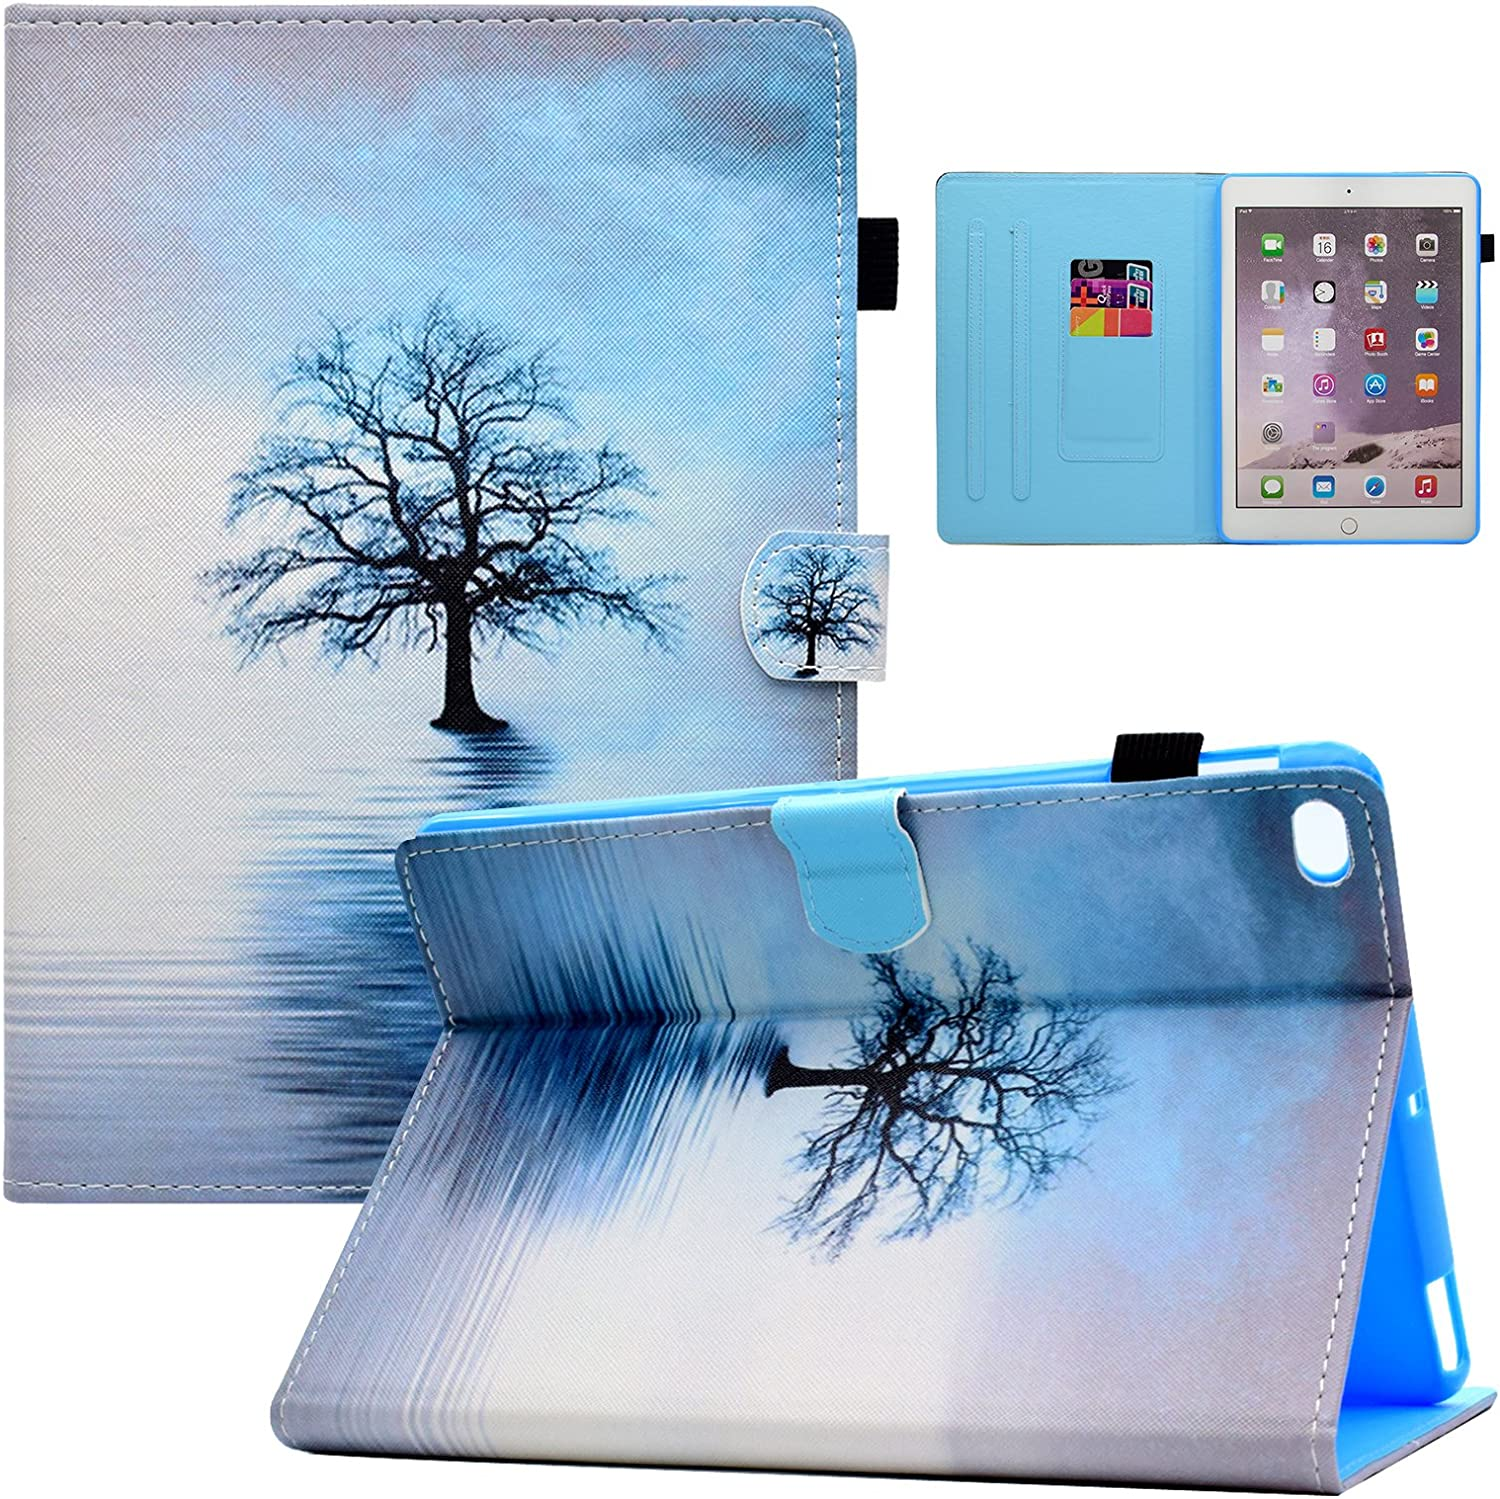 Dteck iPad 9.7 inch 2018 2017 / iPad Air 2 / iPad Air Case,Multi-Angle Viewing Stand Protective Folio Cover Smart Shell with Auto Sleep Wake for Apple iPad 2018/2017 9.7 inch,iPad Air 1/2, Water Tree